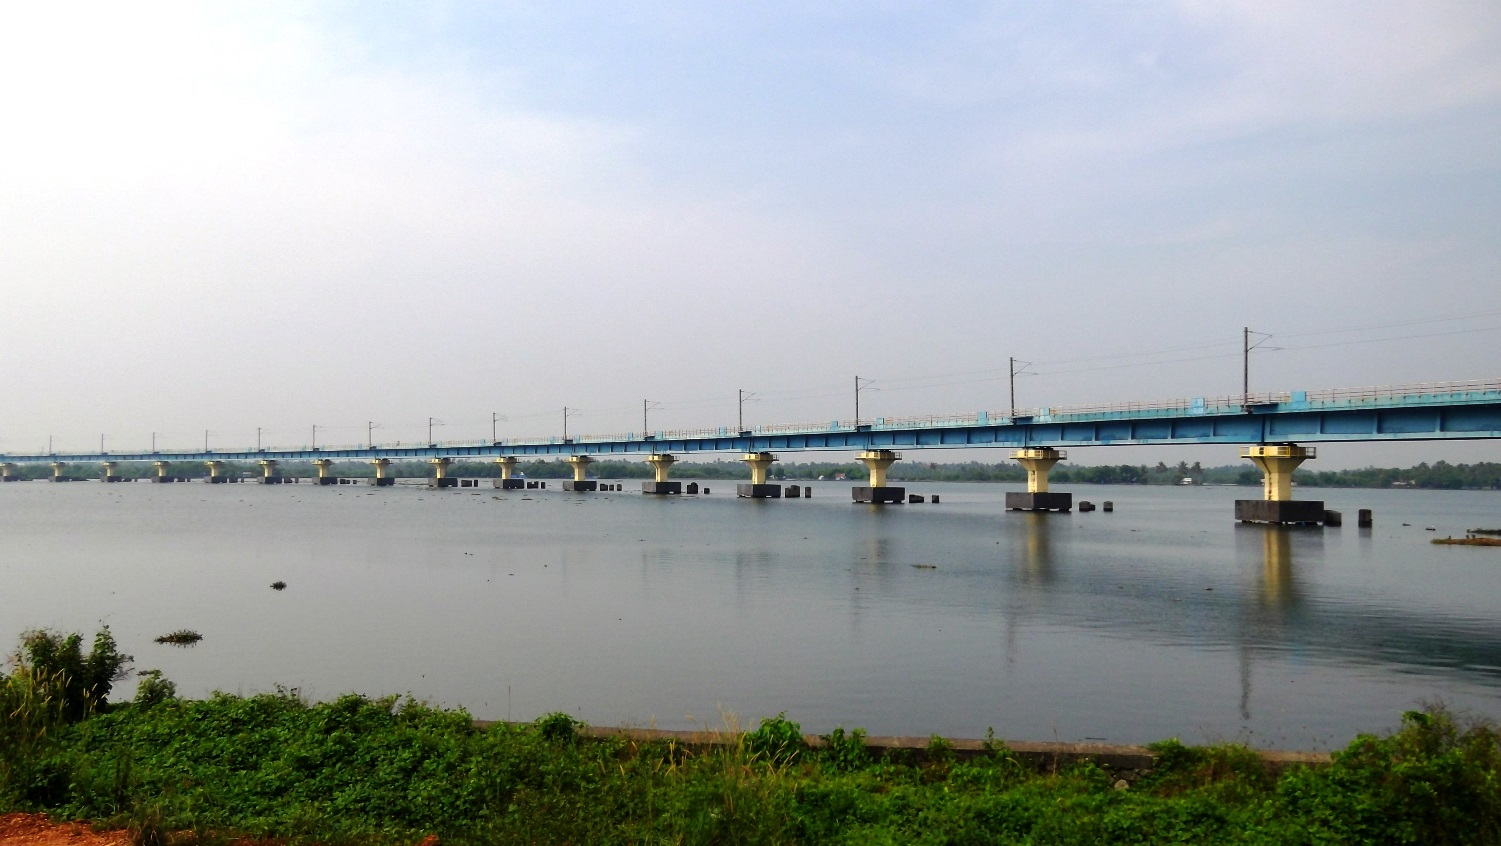 Vembanad Rail Bridge